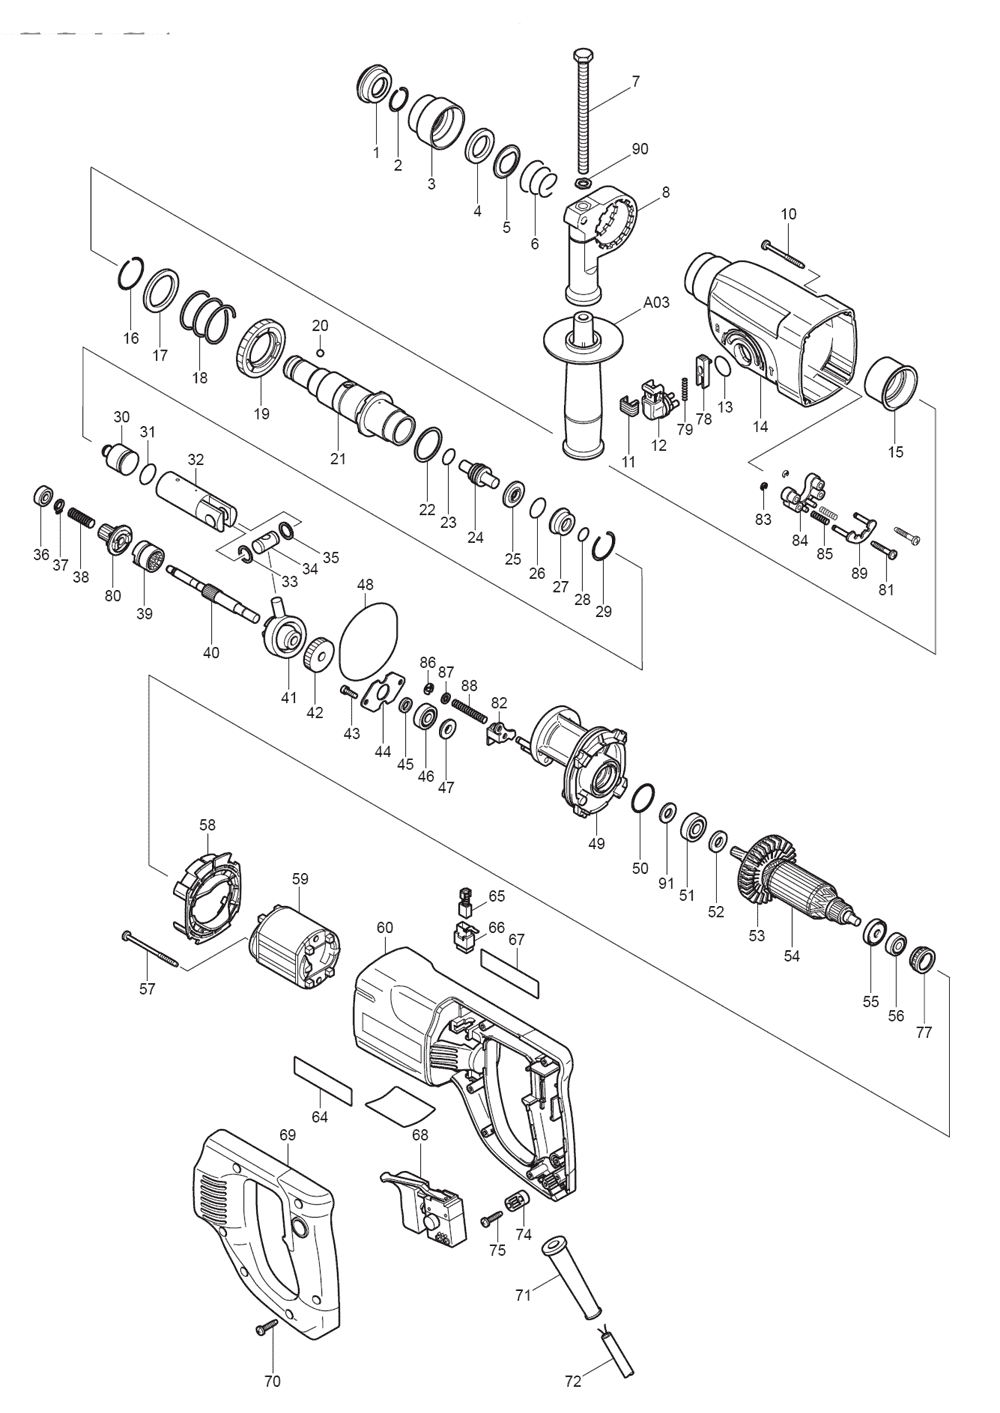 bmw e28 engine diagram bmw 318ti engine diagram wiring